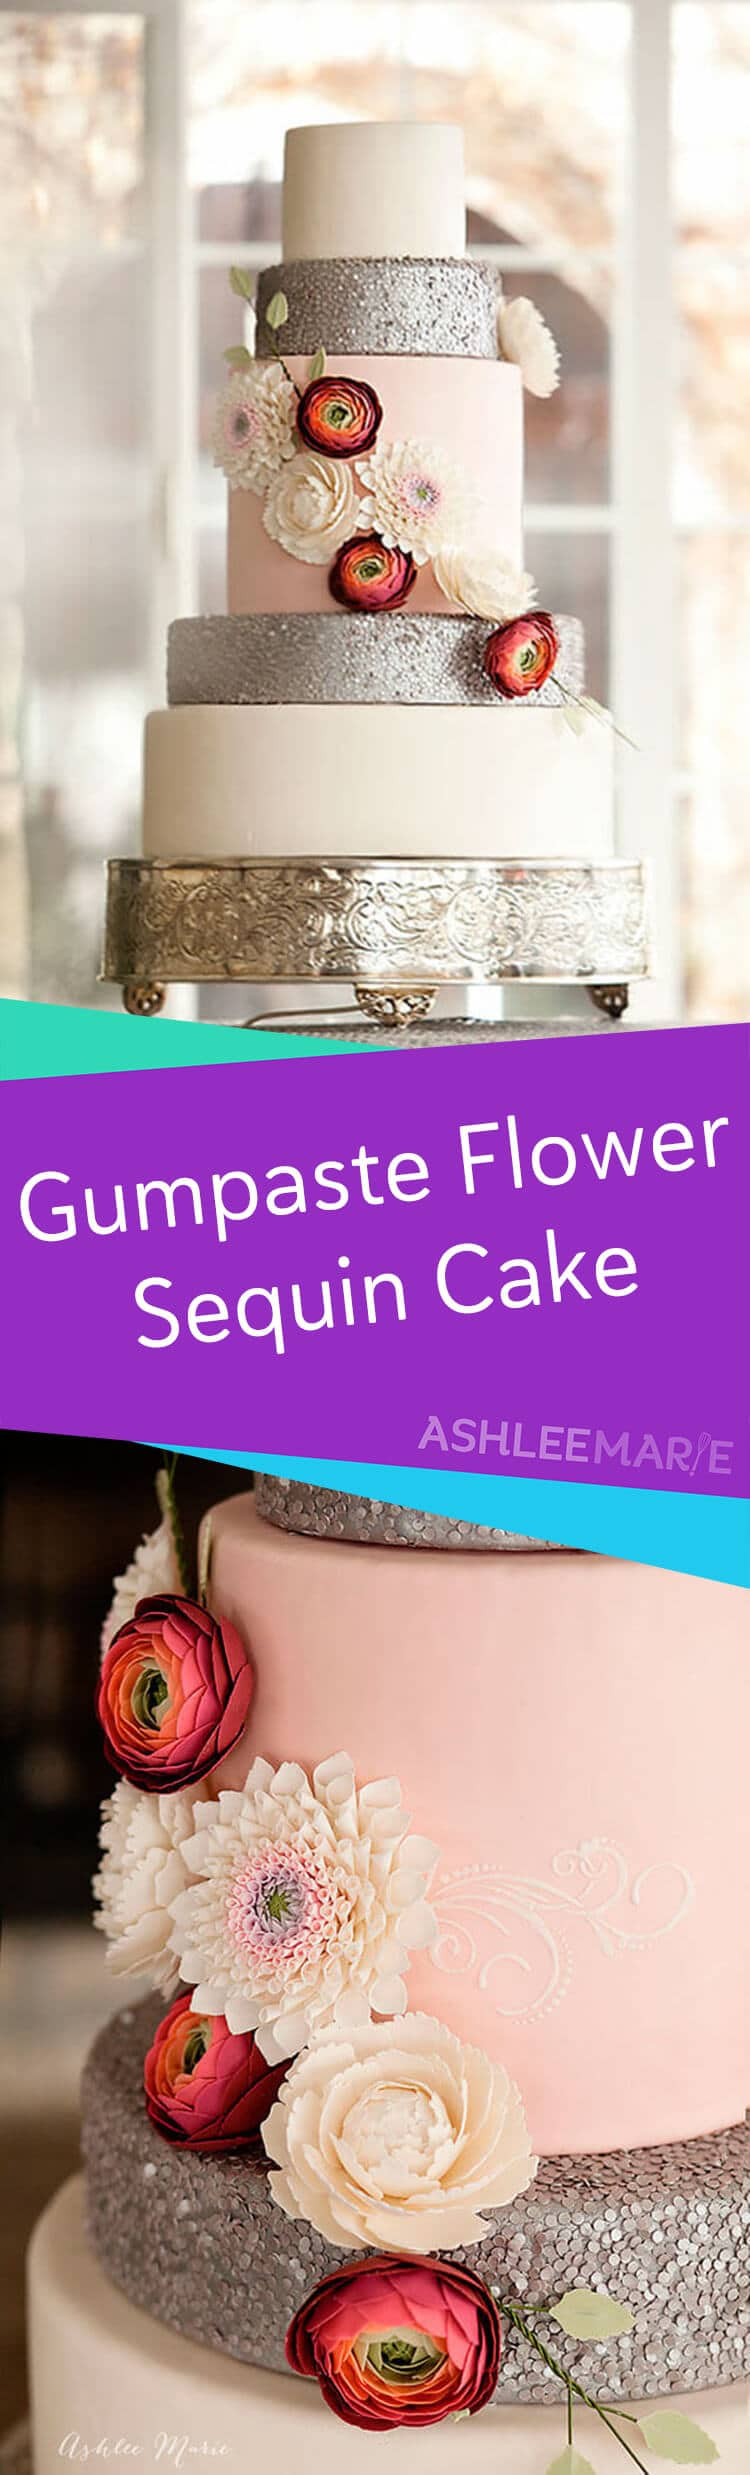 gumpaste flower edible sequin cake